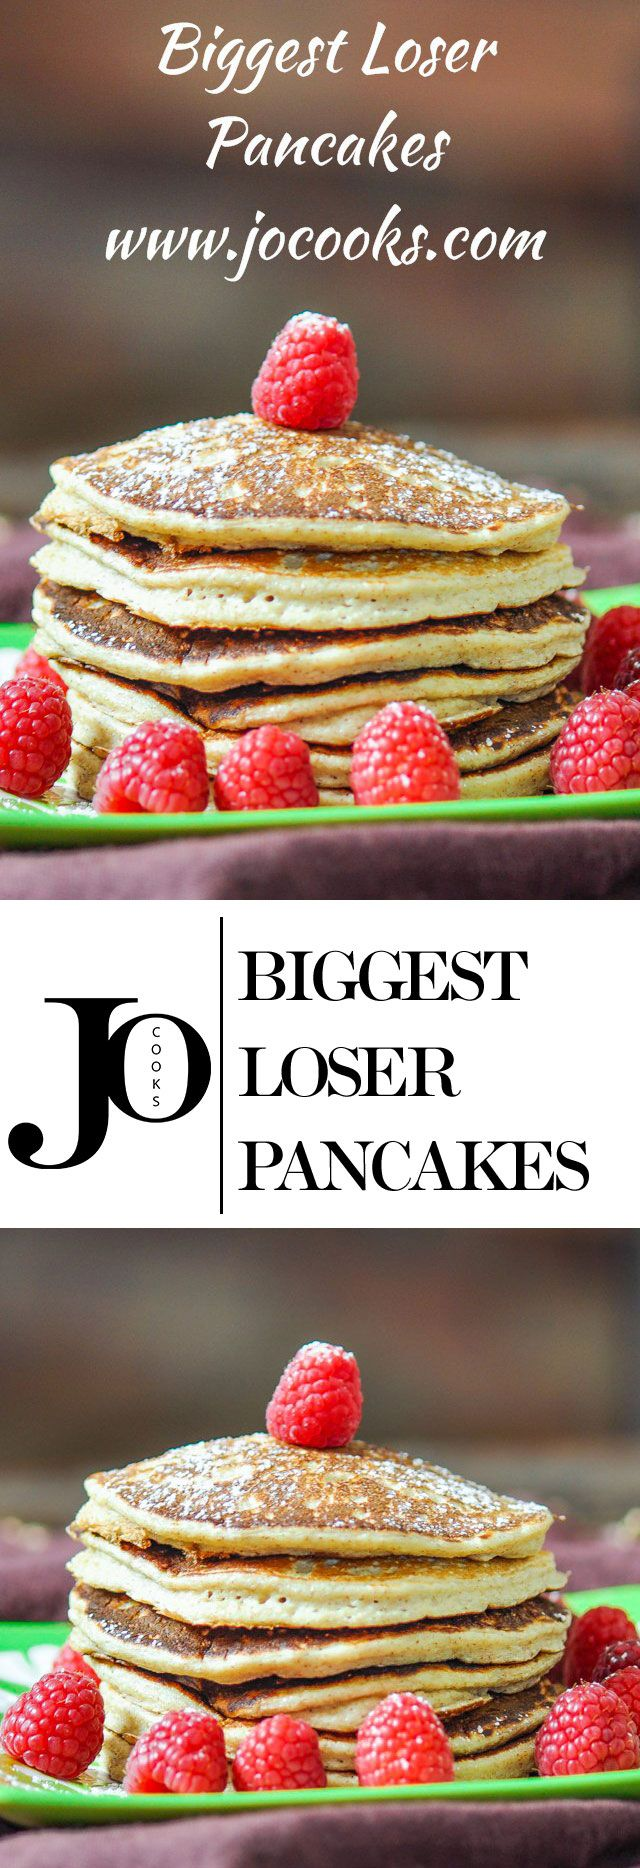 Biggest Loser Pancakes - you won't believe the ingredients and you won't believe how good they are at only 220 calories for 3 pancakes.